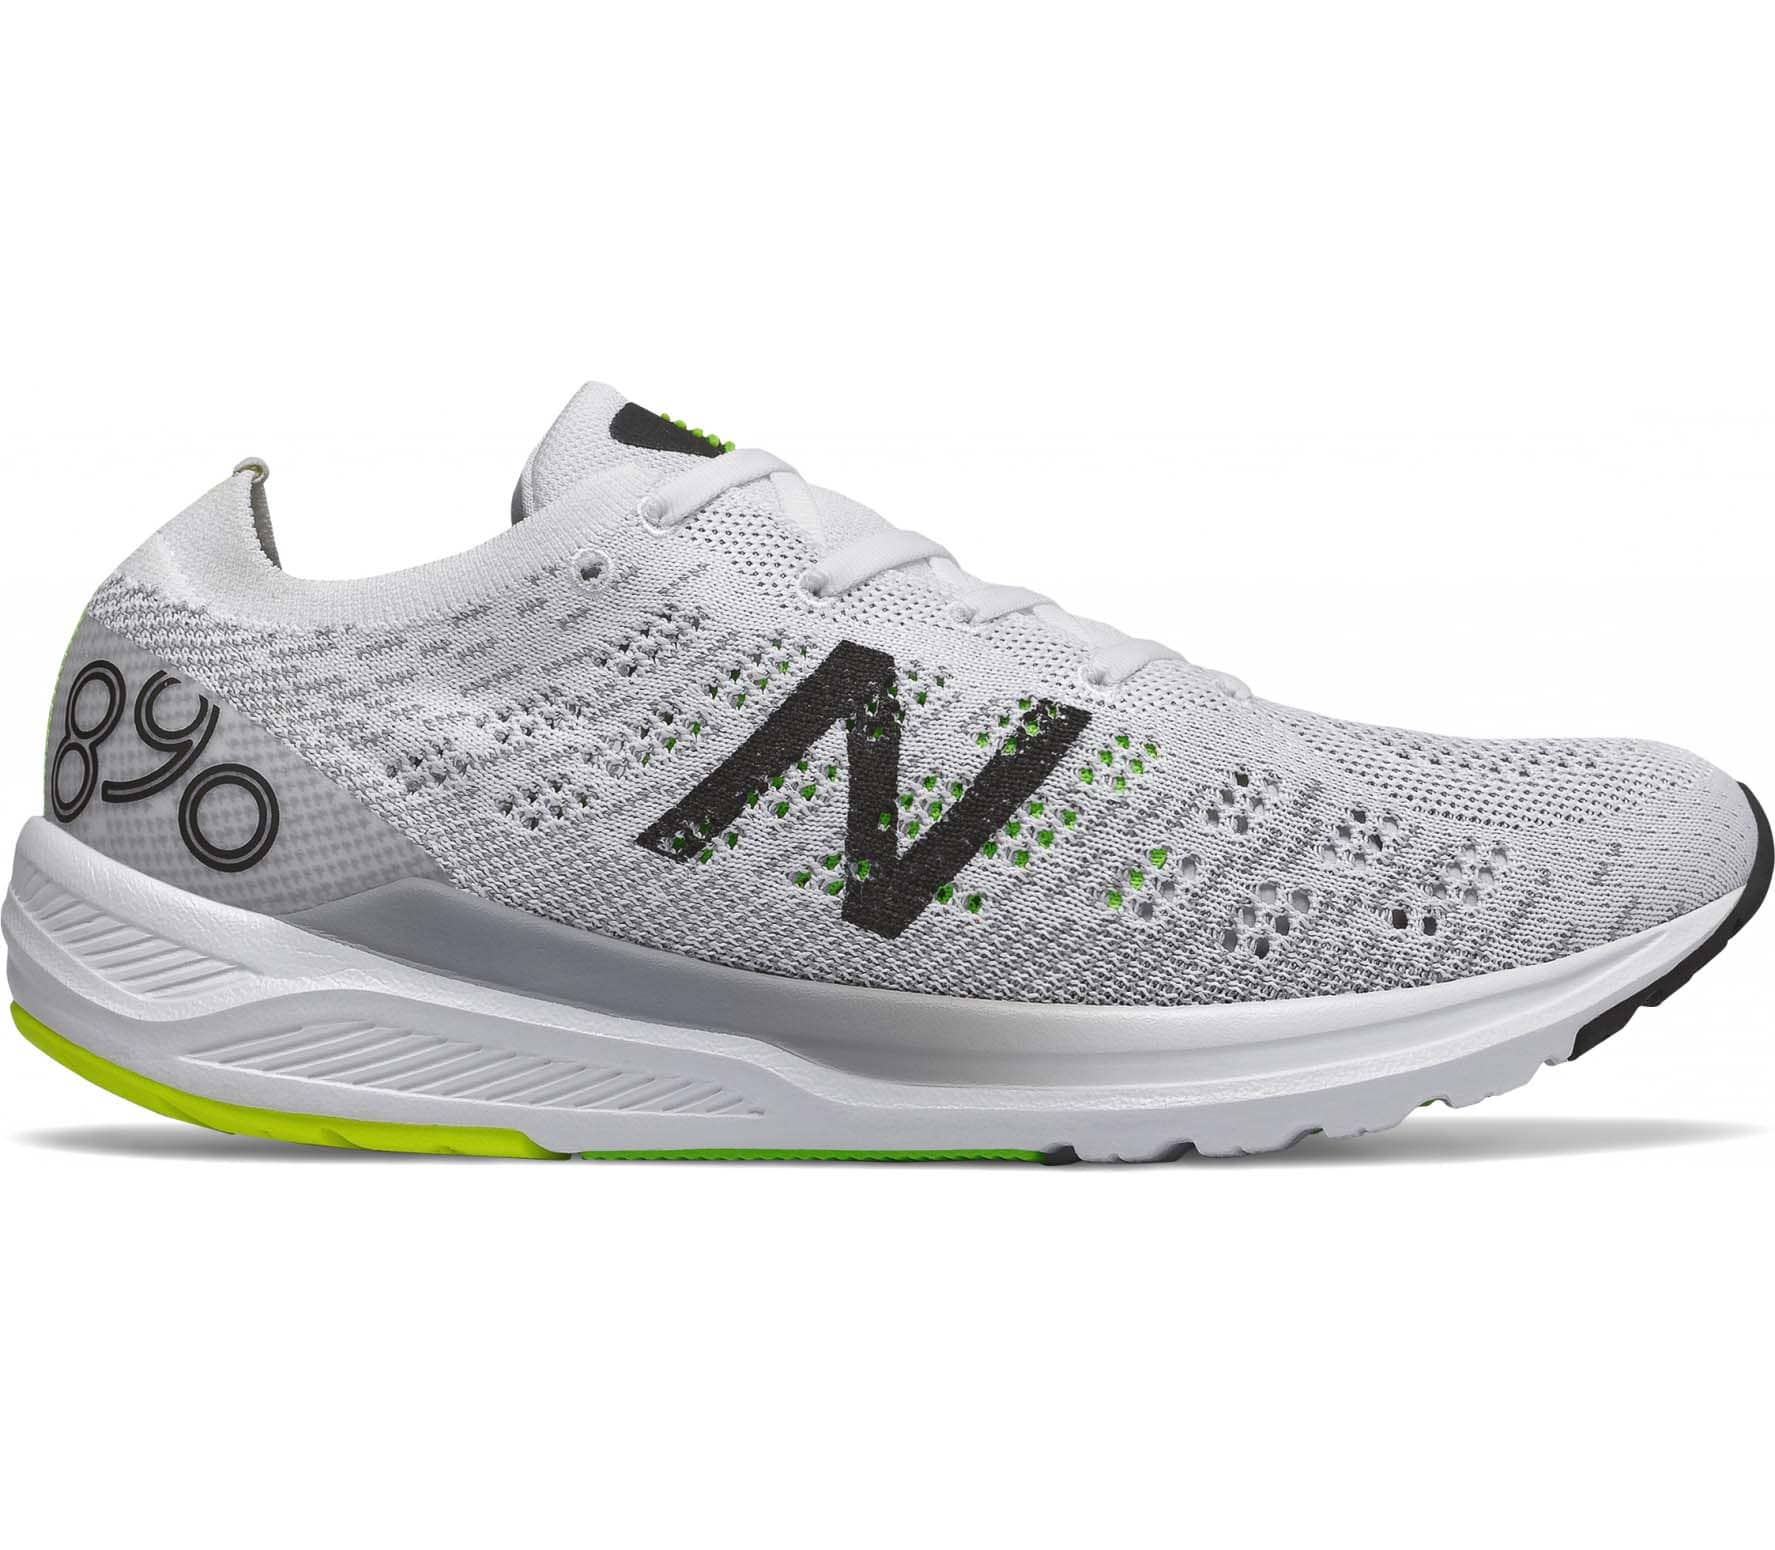 buy popular 3afc9 3077a New Balance - 890 v7 men s running shoes (white black)